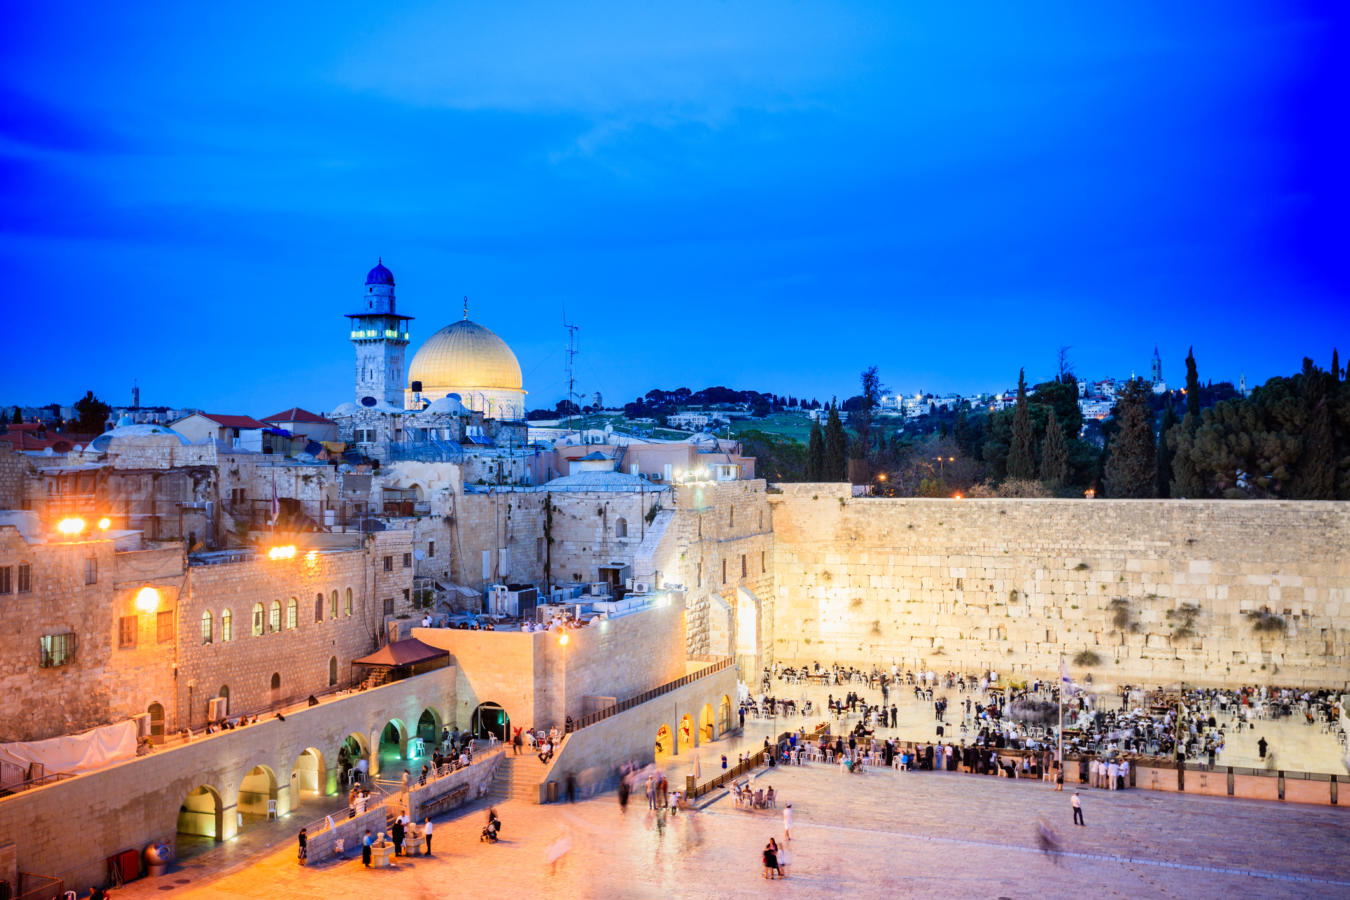 Travel Warning for Israel Ahead of Jerusalem Statement